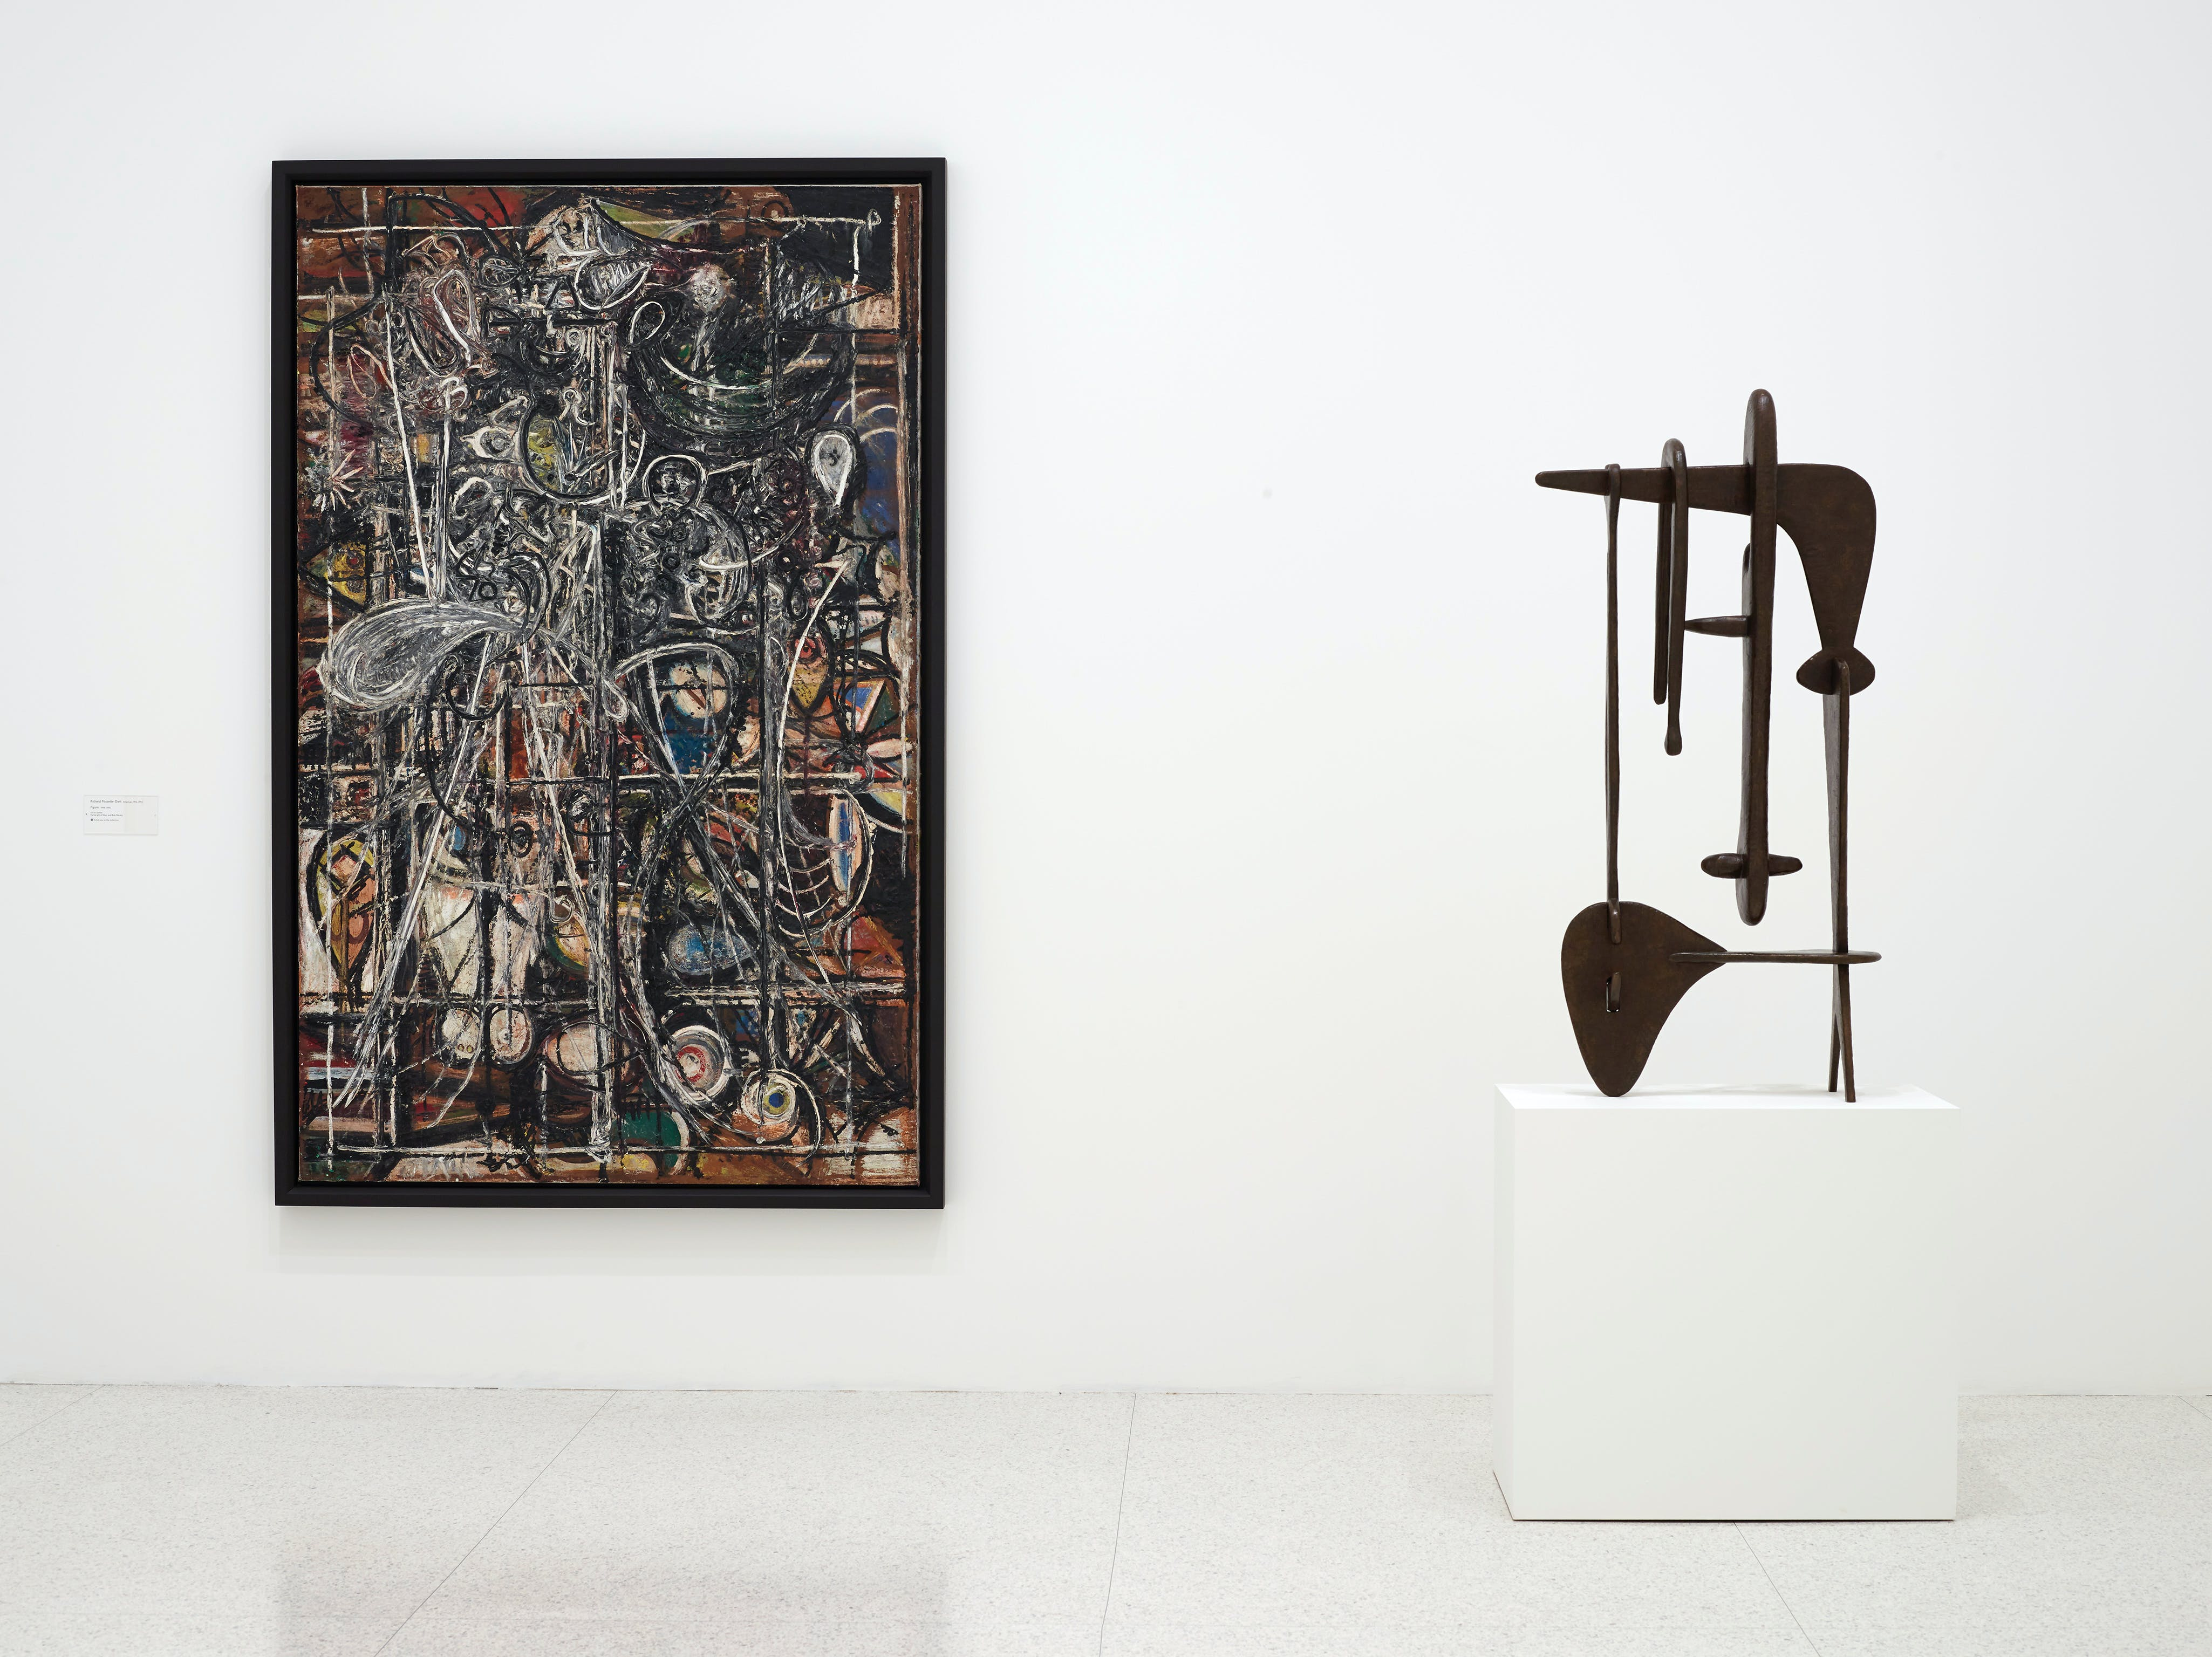 View of the exhibition 75 Gifts for 75 Years, 2015; (left to right): Richard Pousette-Dart, Figure, 1944–45; Isamu Noguchi, Remembrance, 1944